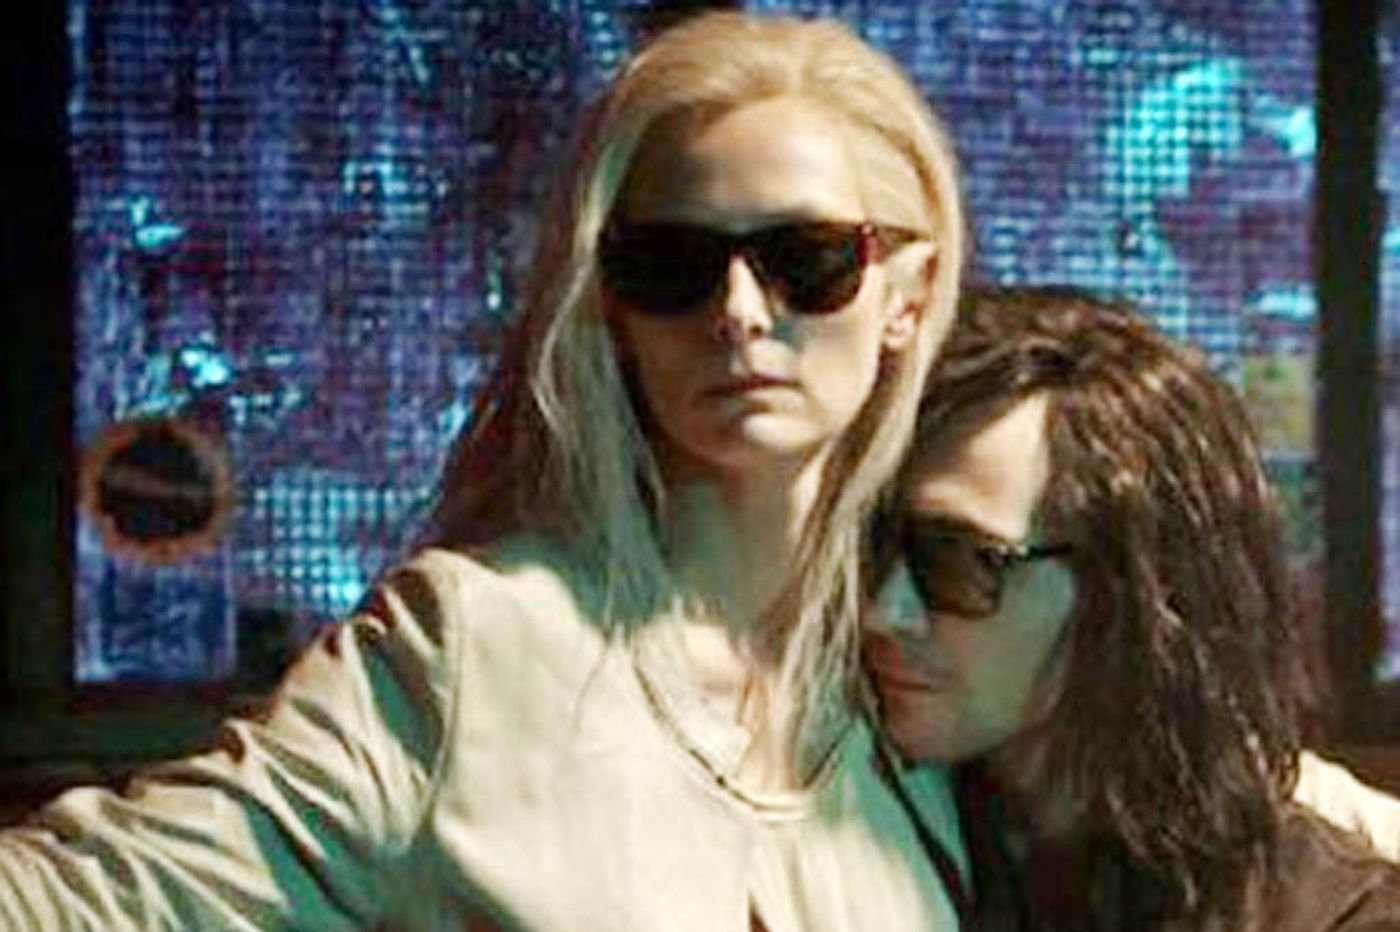 'Lovers': Jim Jarmusch's vampire flick